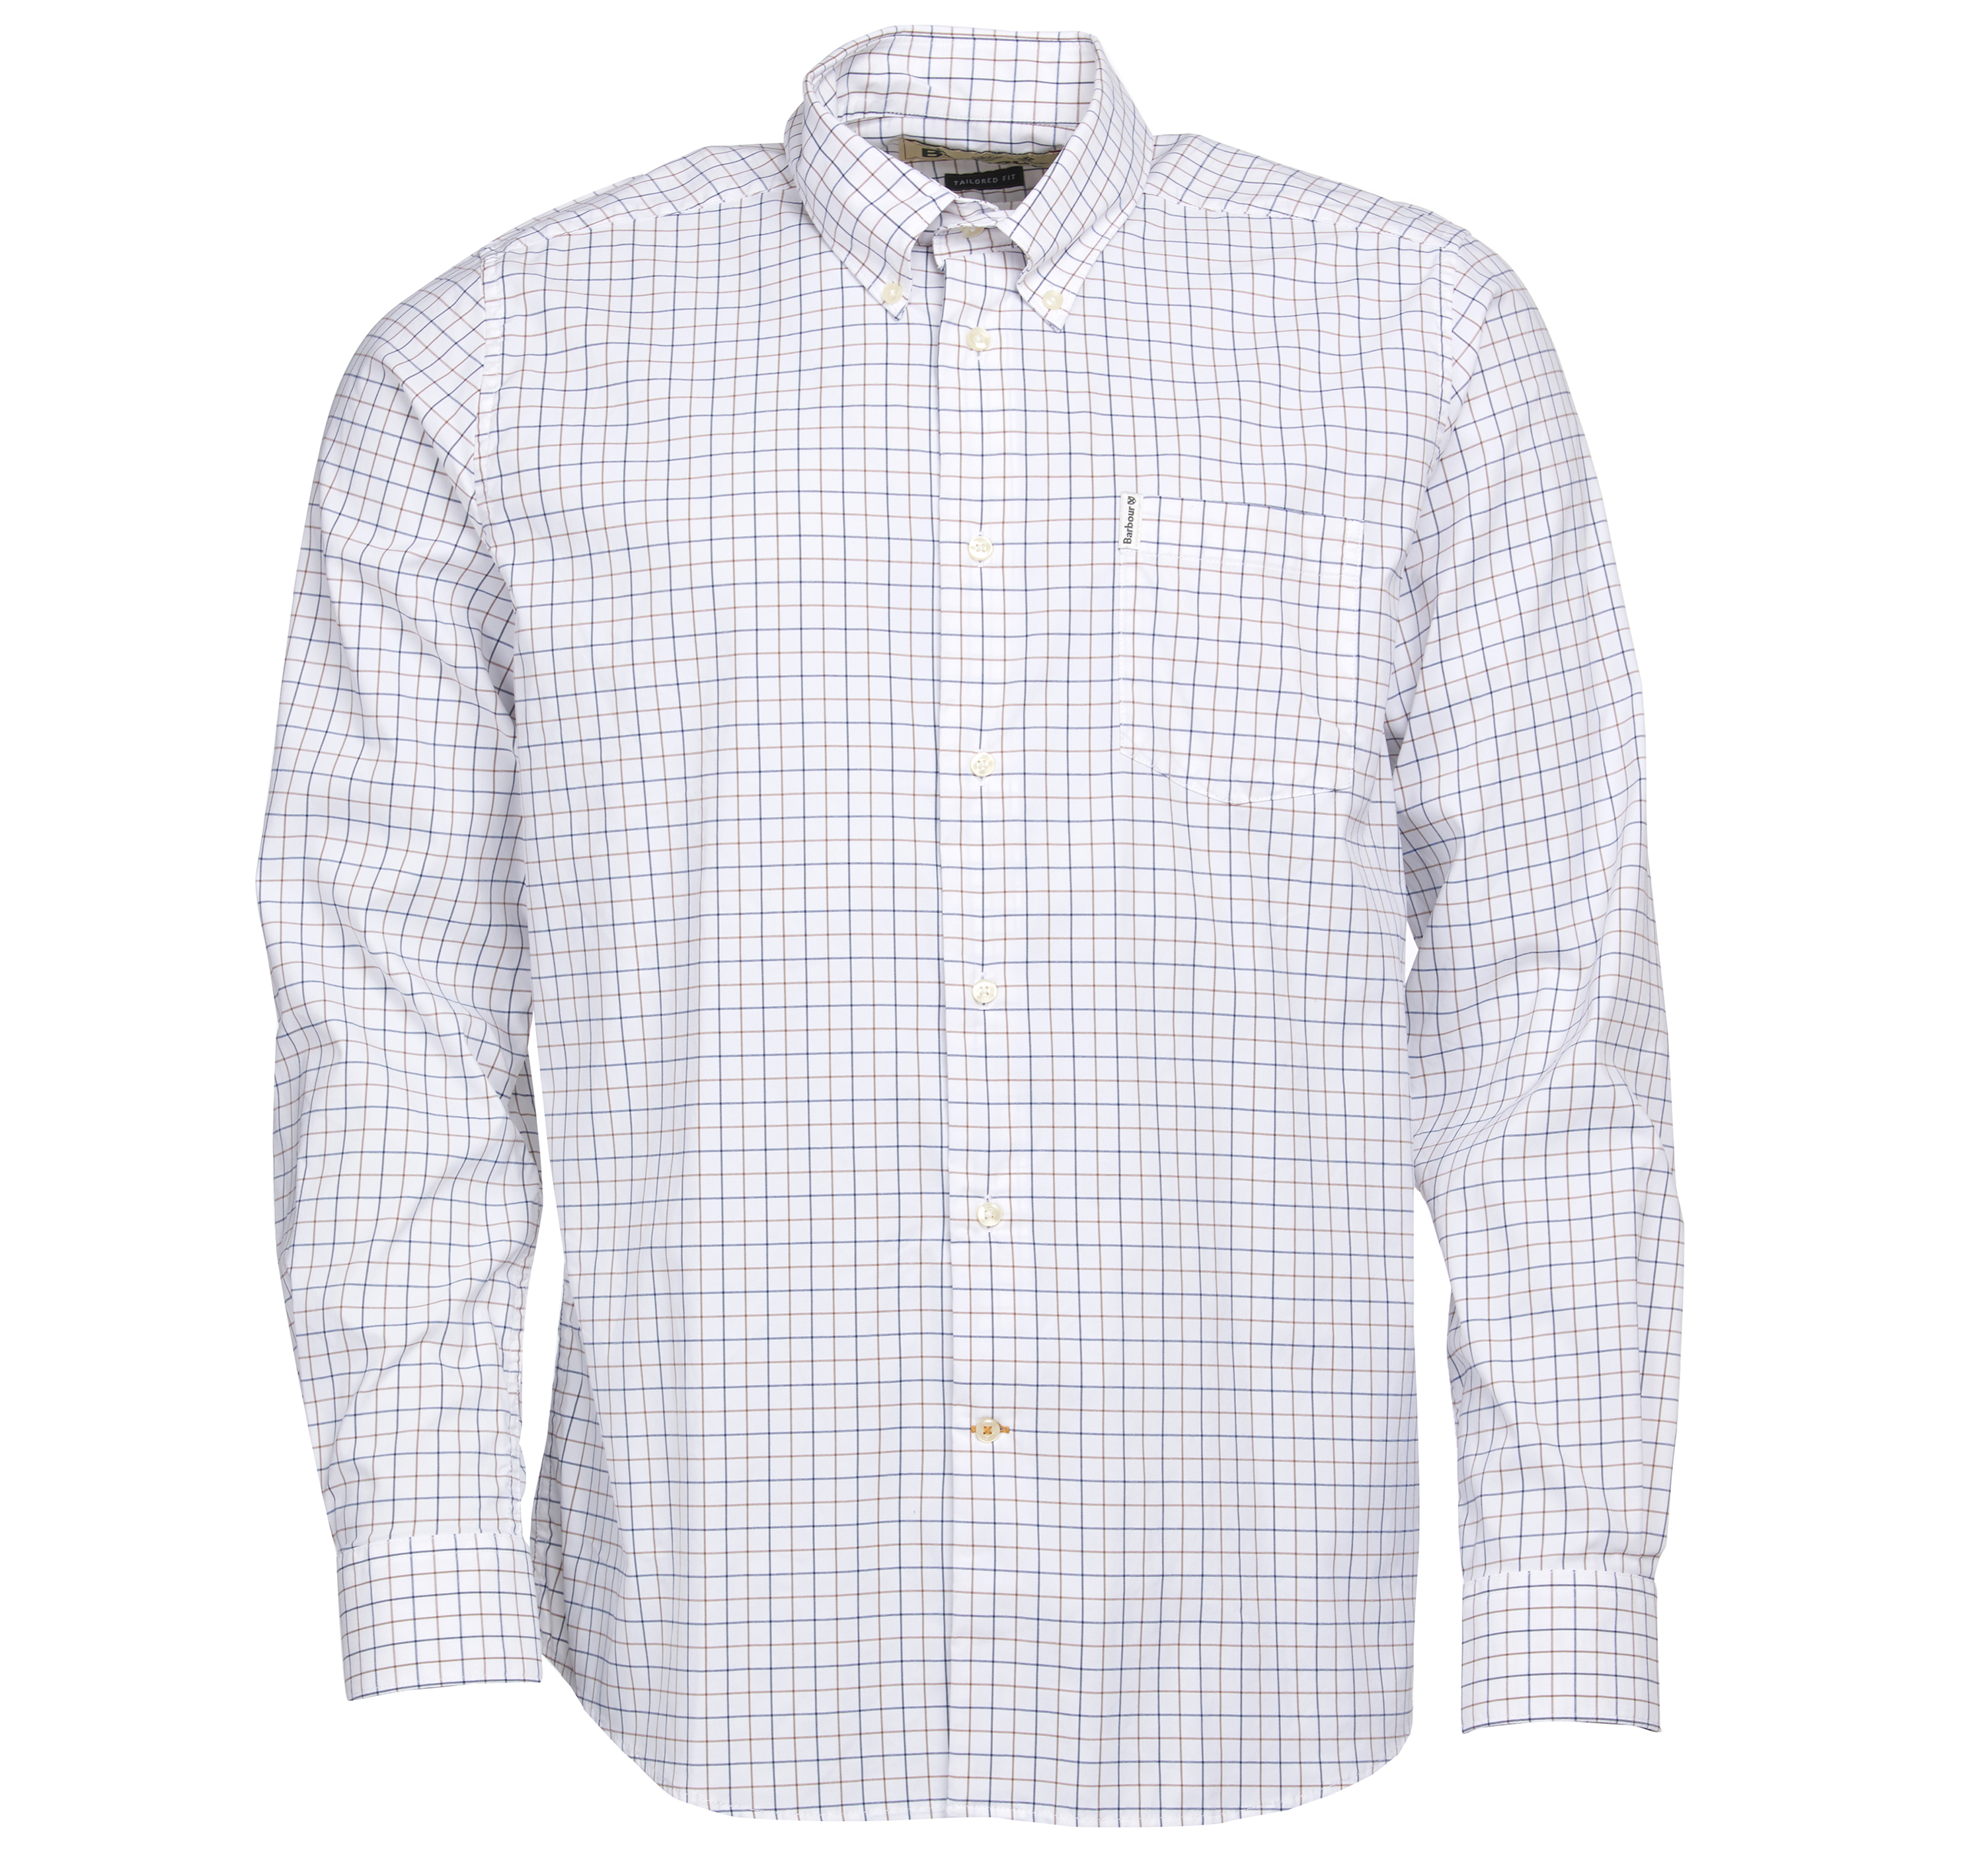 Barbour Barbour Batley Performance Shirt Tailored Fit